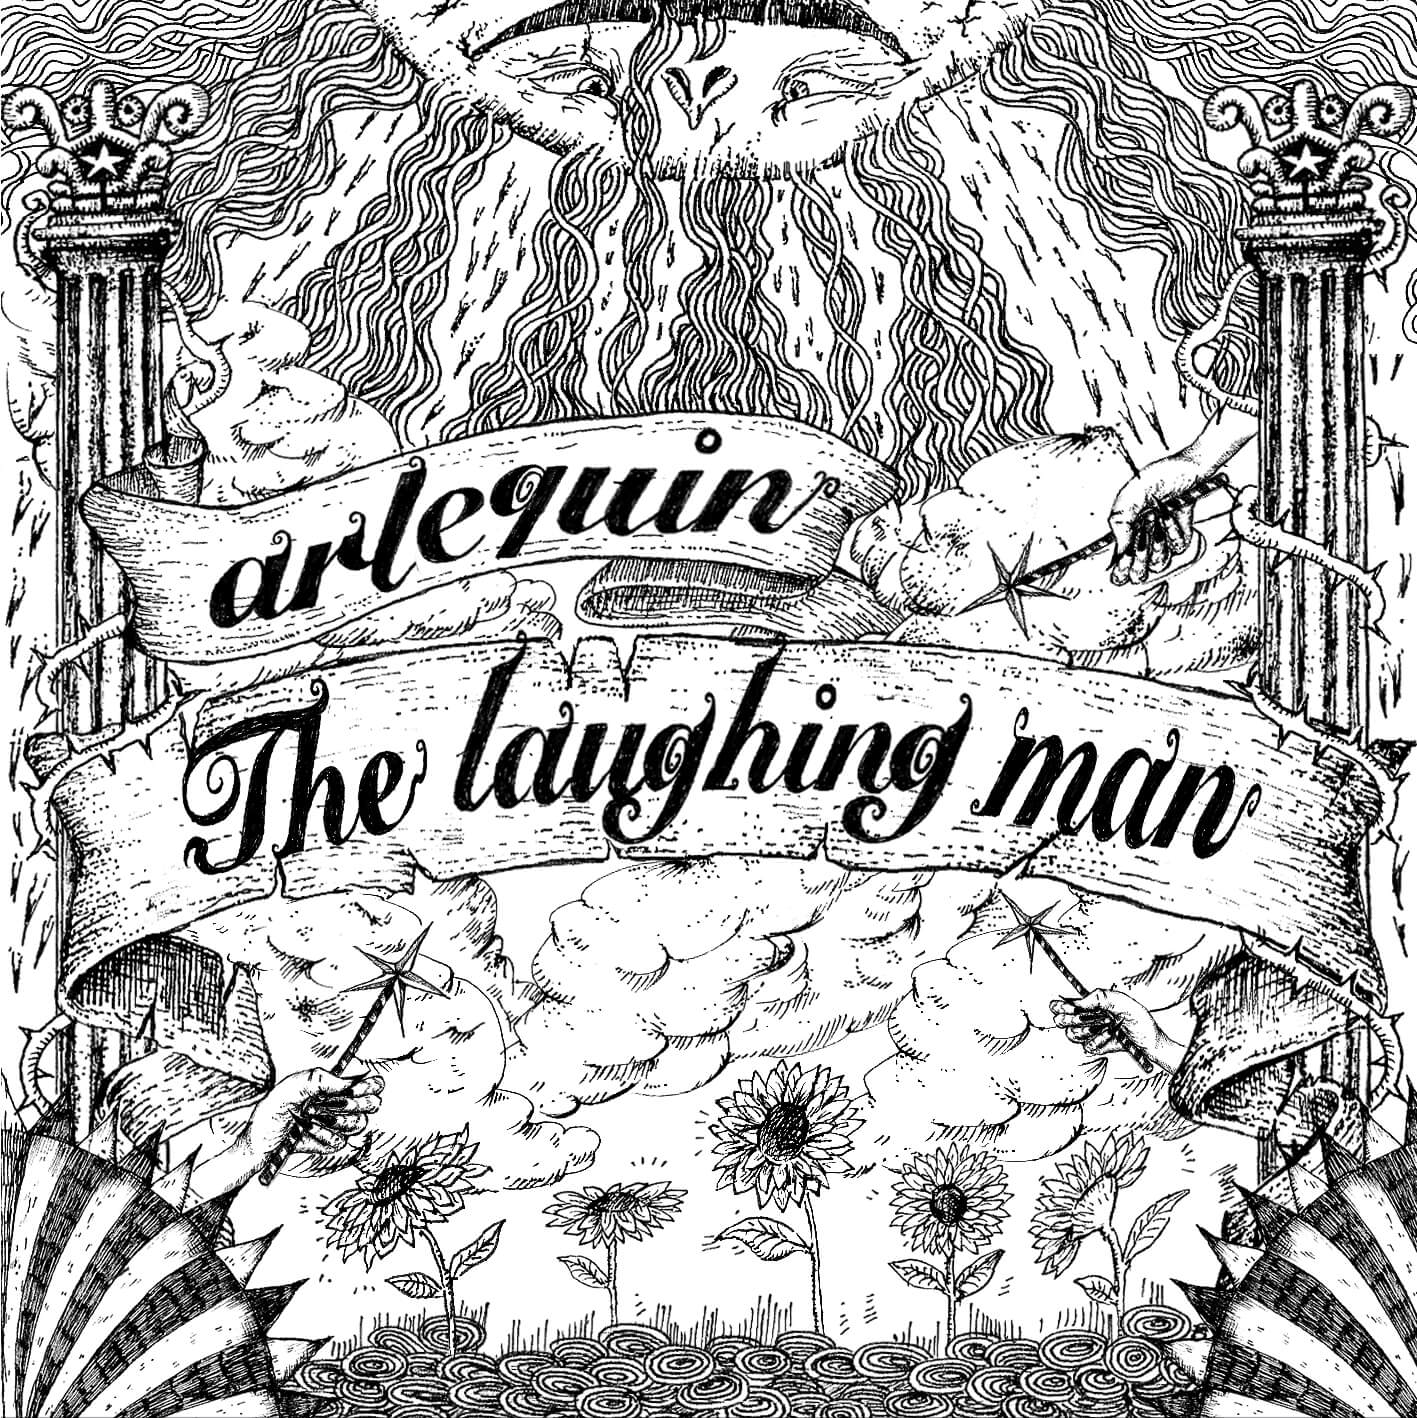 「The laughing man」【通常盤】